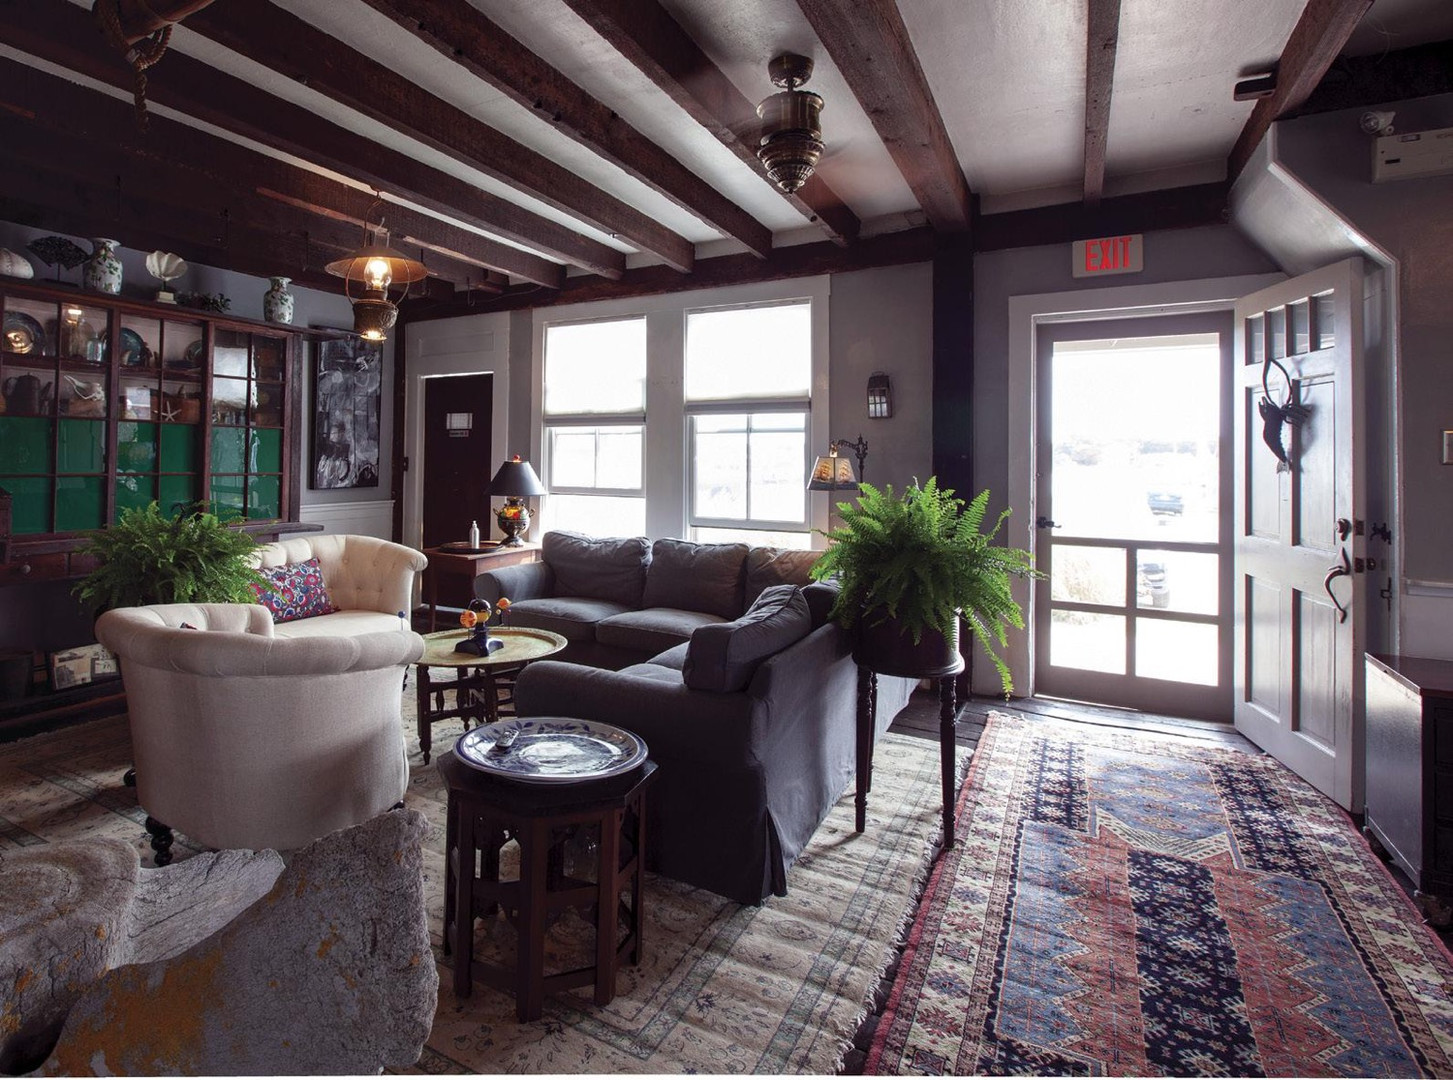 The lobby at the paquachuck